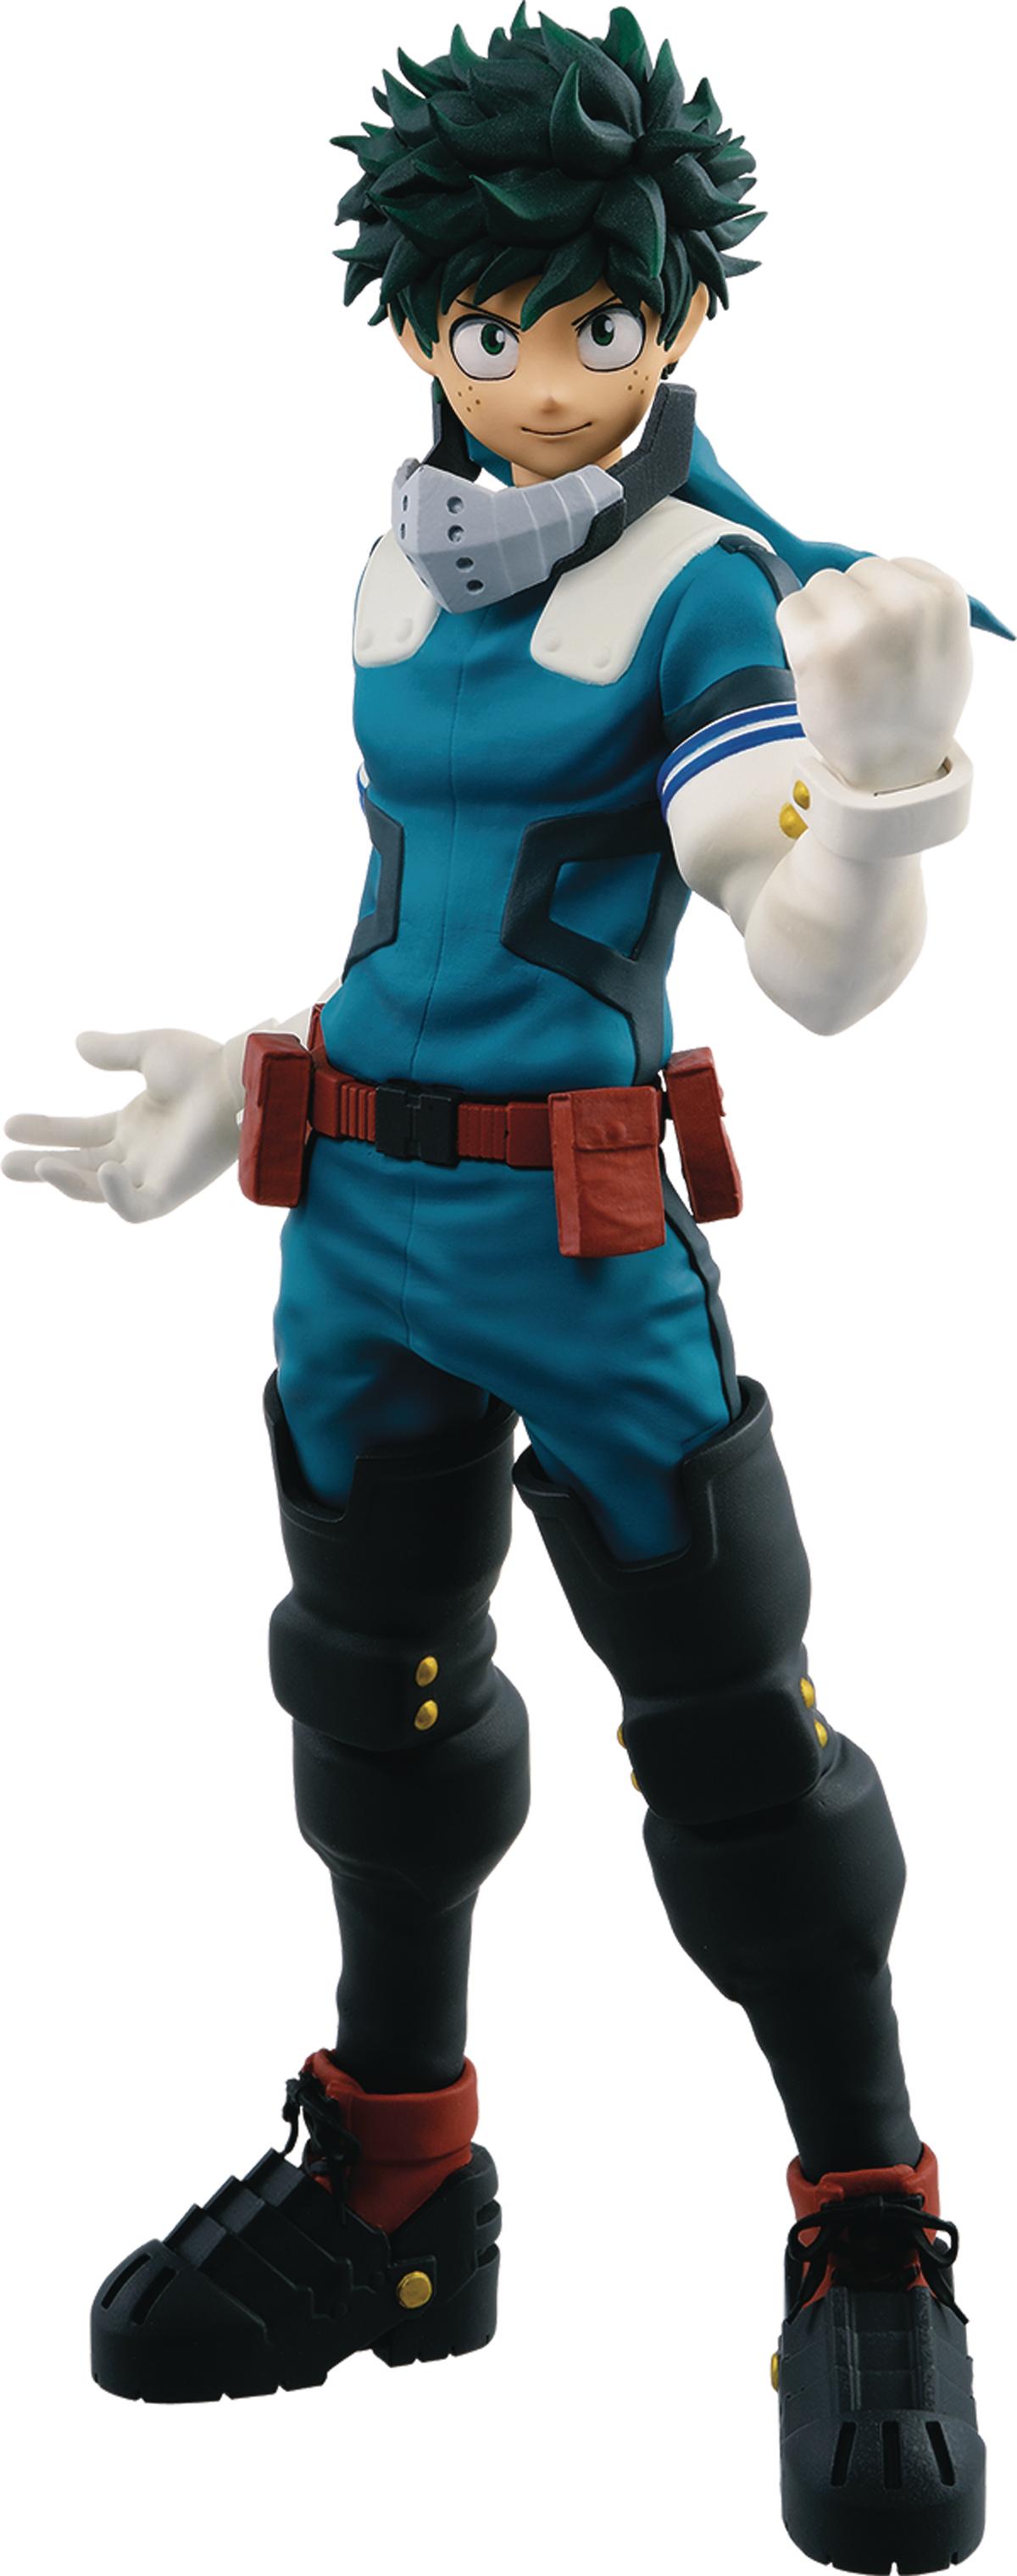 MY HERO ACADEMIA FIGHTING HEROES IZUKU MIDORIYA ICHIBAN FIG